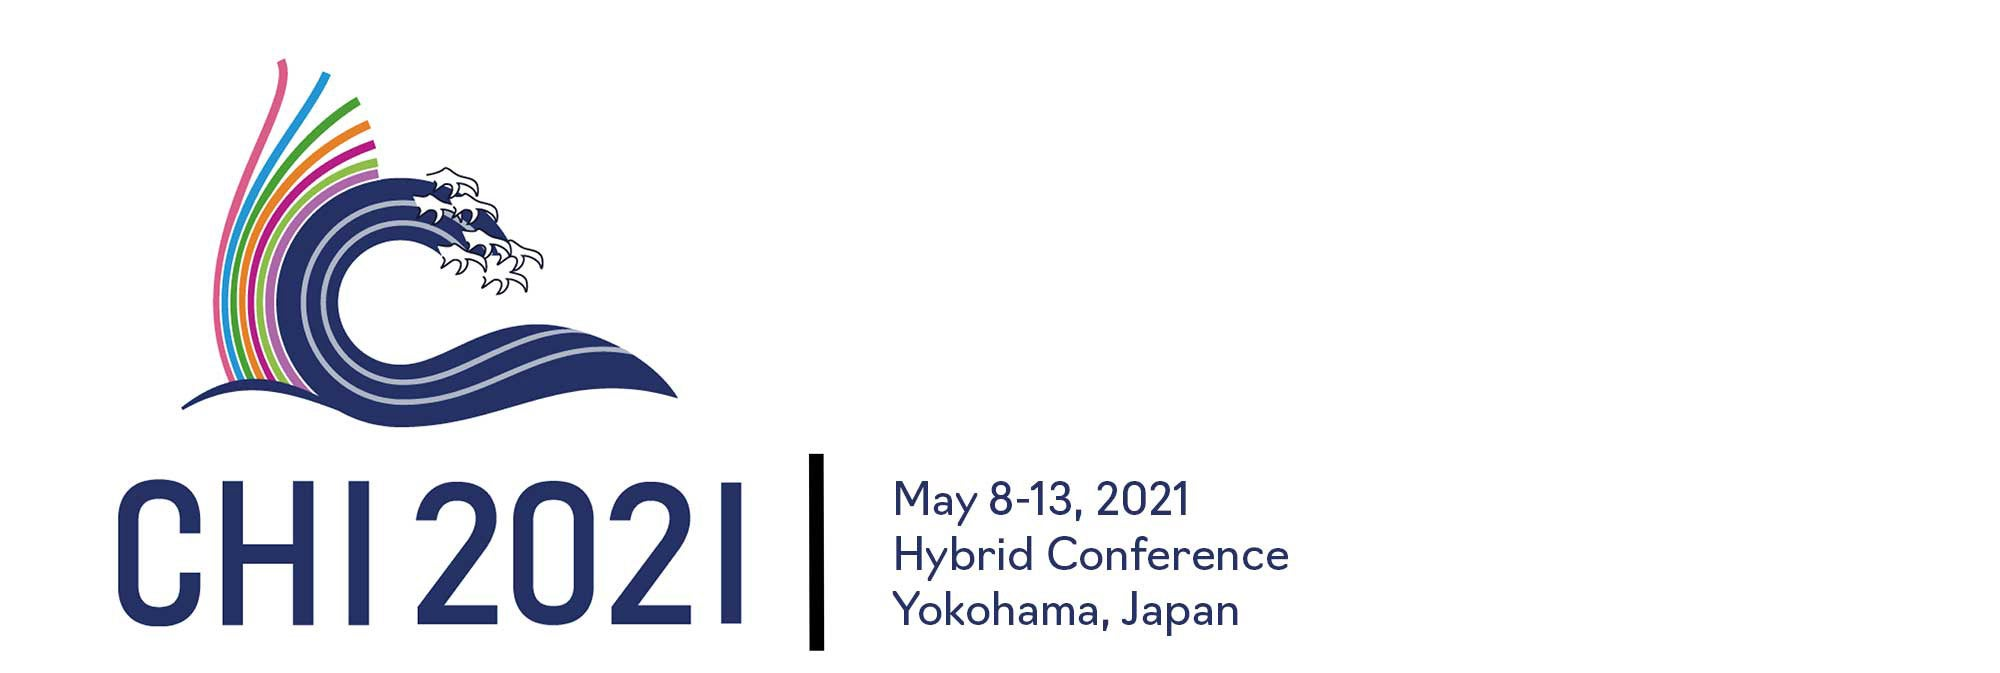 Banner image featuring CHI 2021 logo